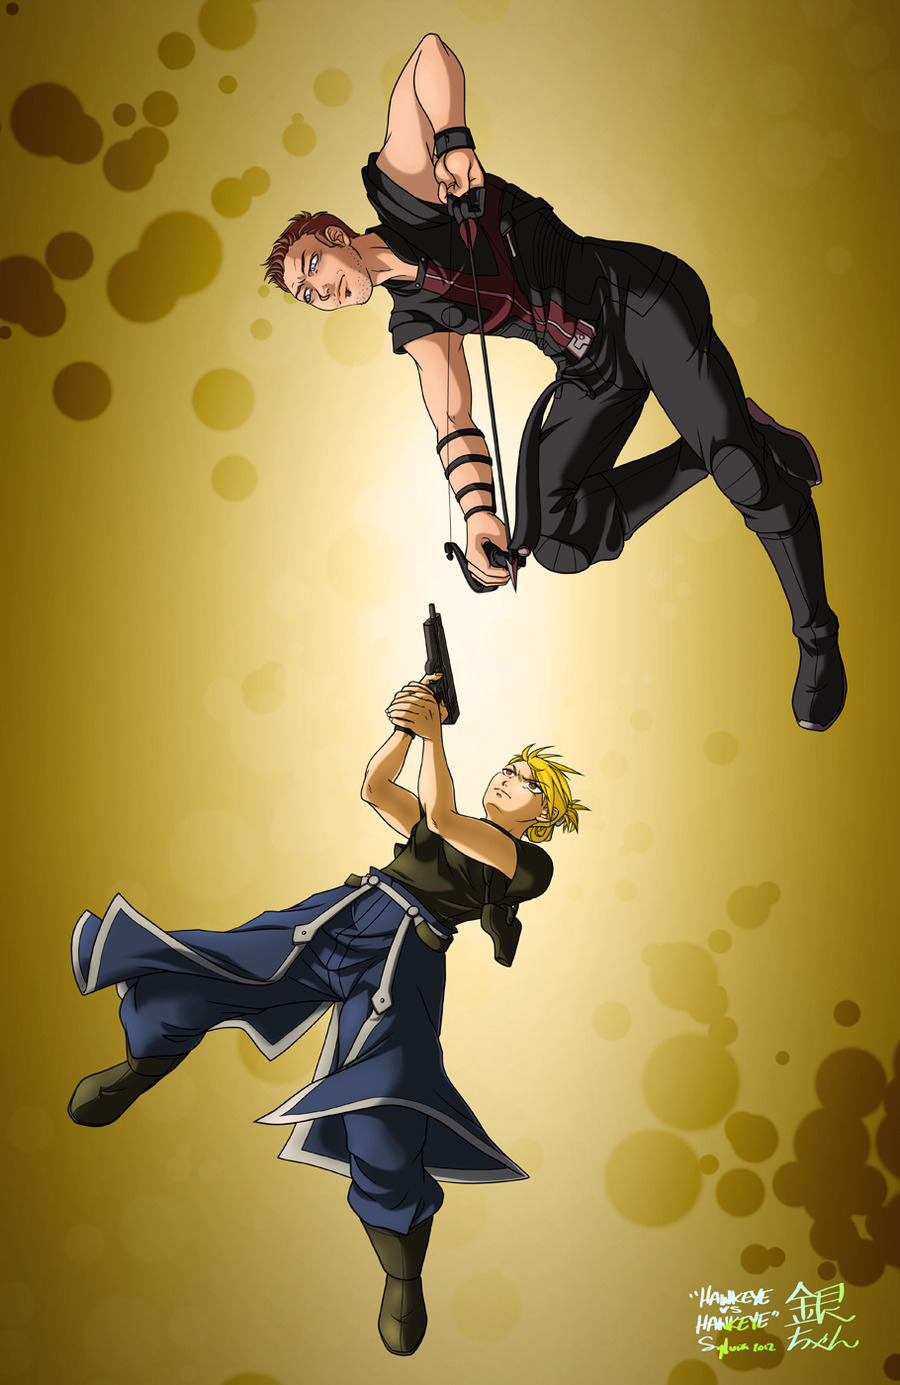 Hawkeye vs Hawkeye by ~ginchan After posting this questions, I drew the question. lol